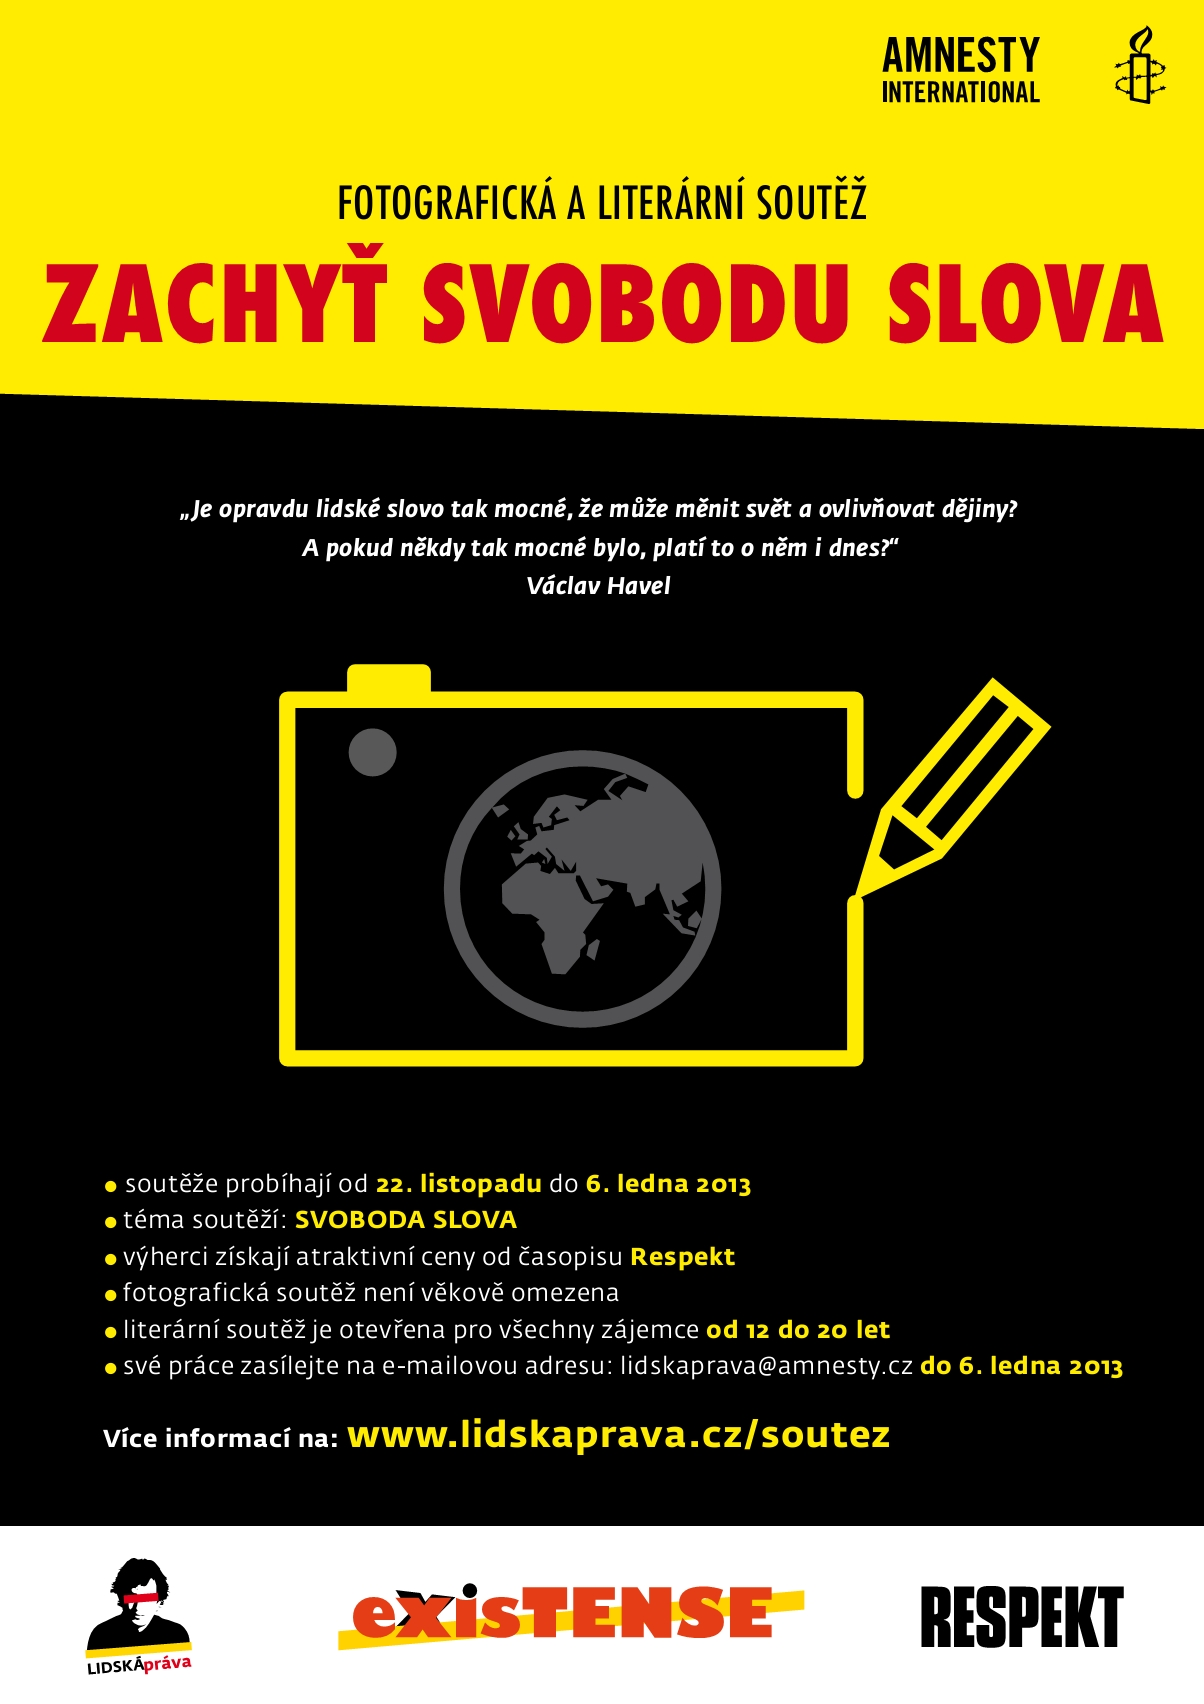 Vsledky soute Zachy svobodu slova!